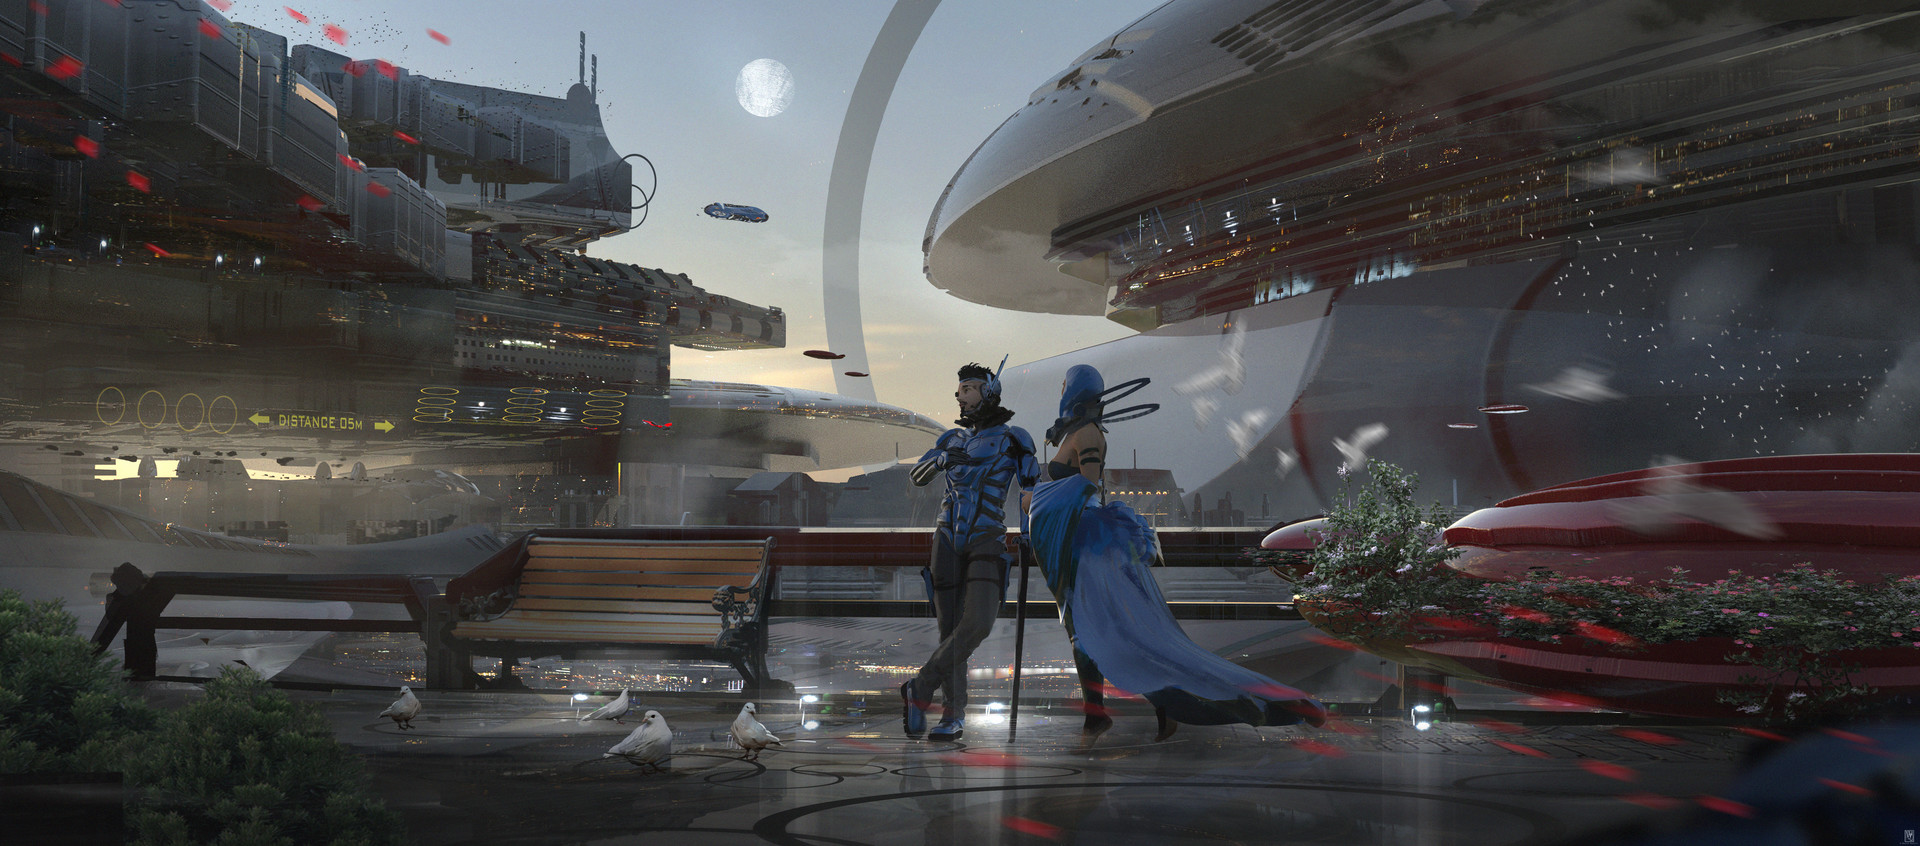 The Sci-Fi Art of Wadim Kashin